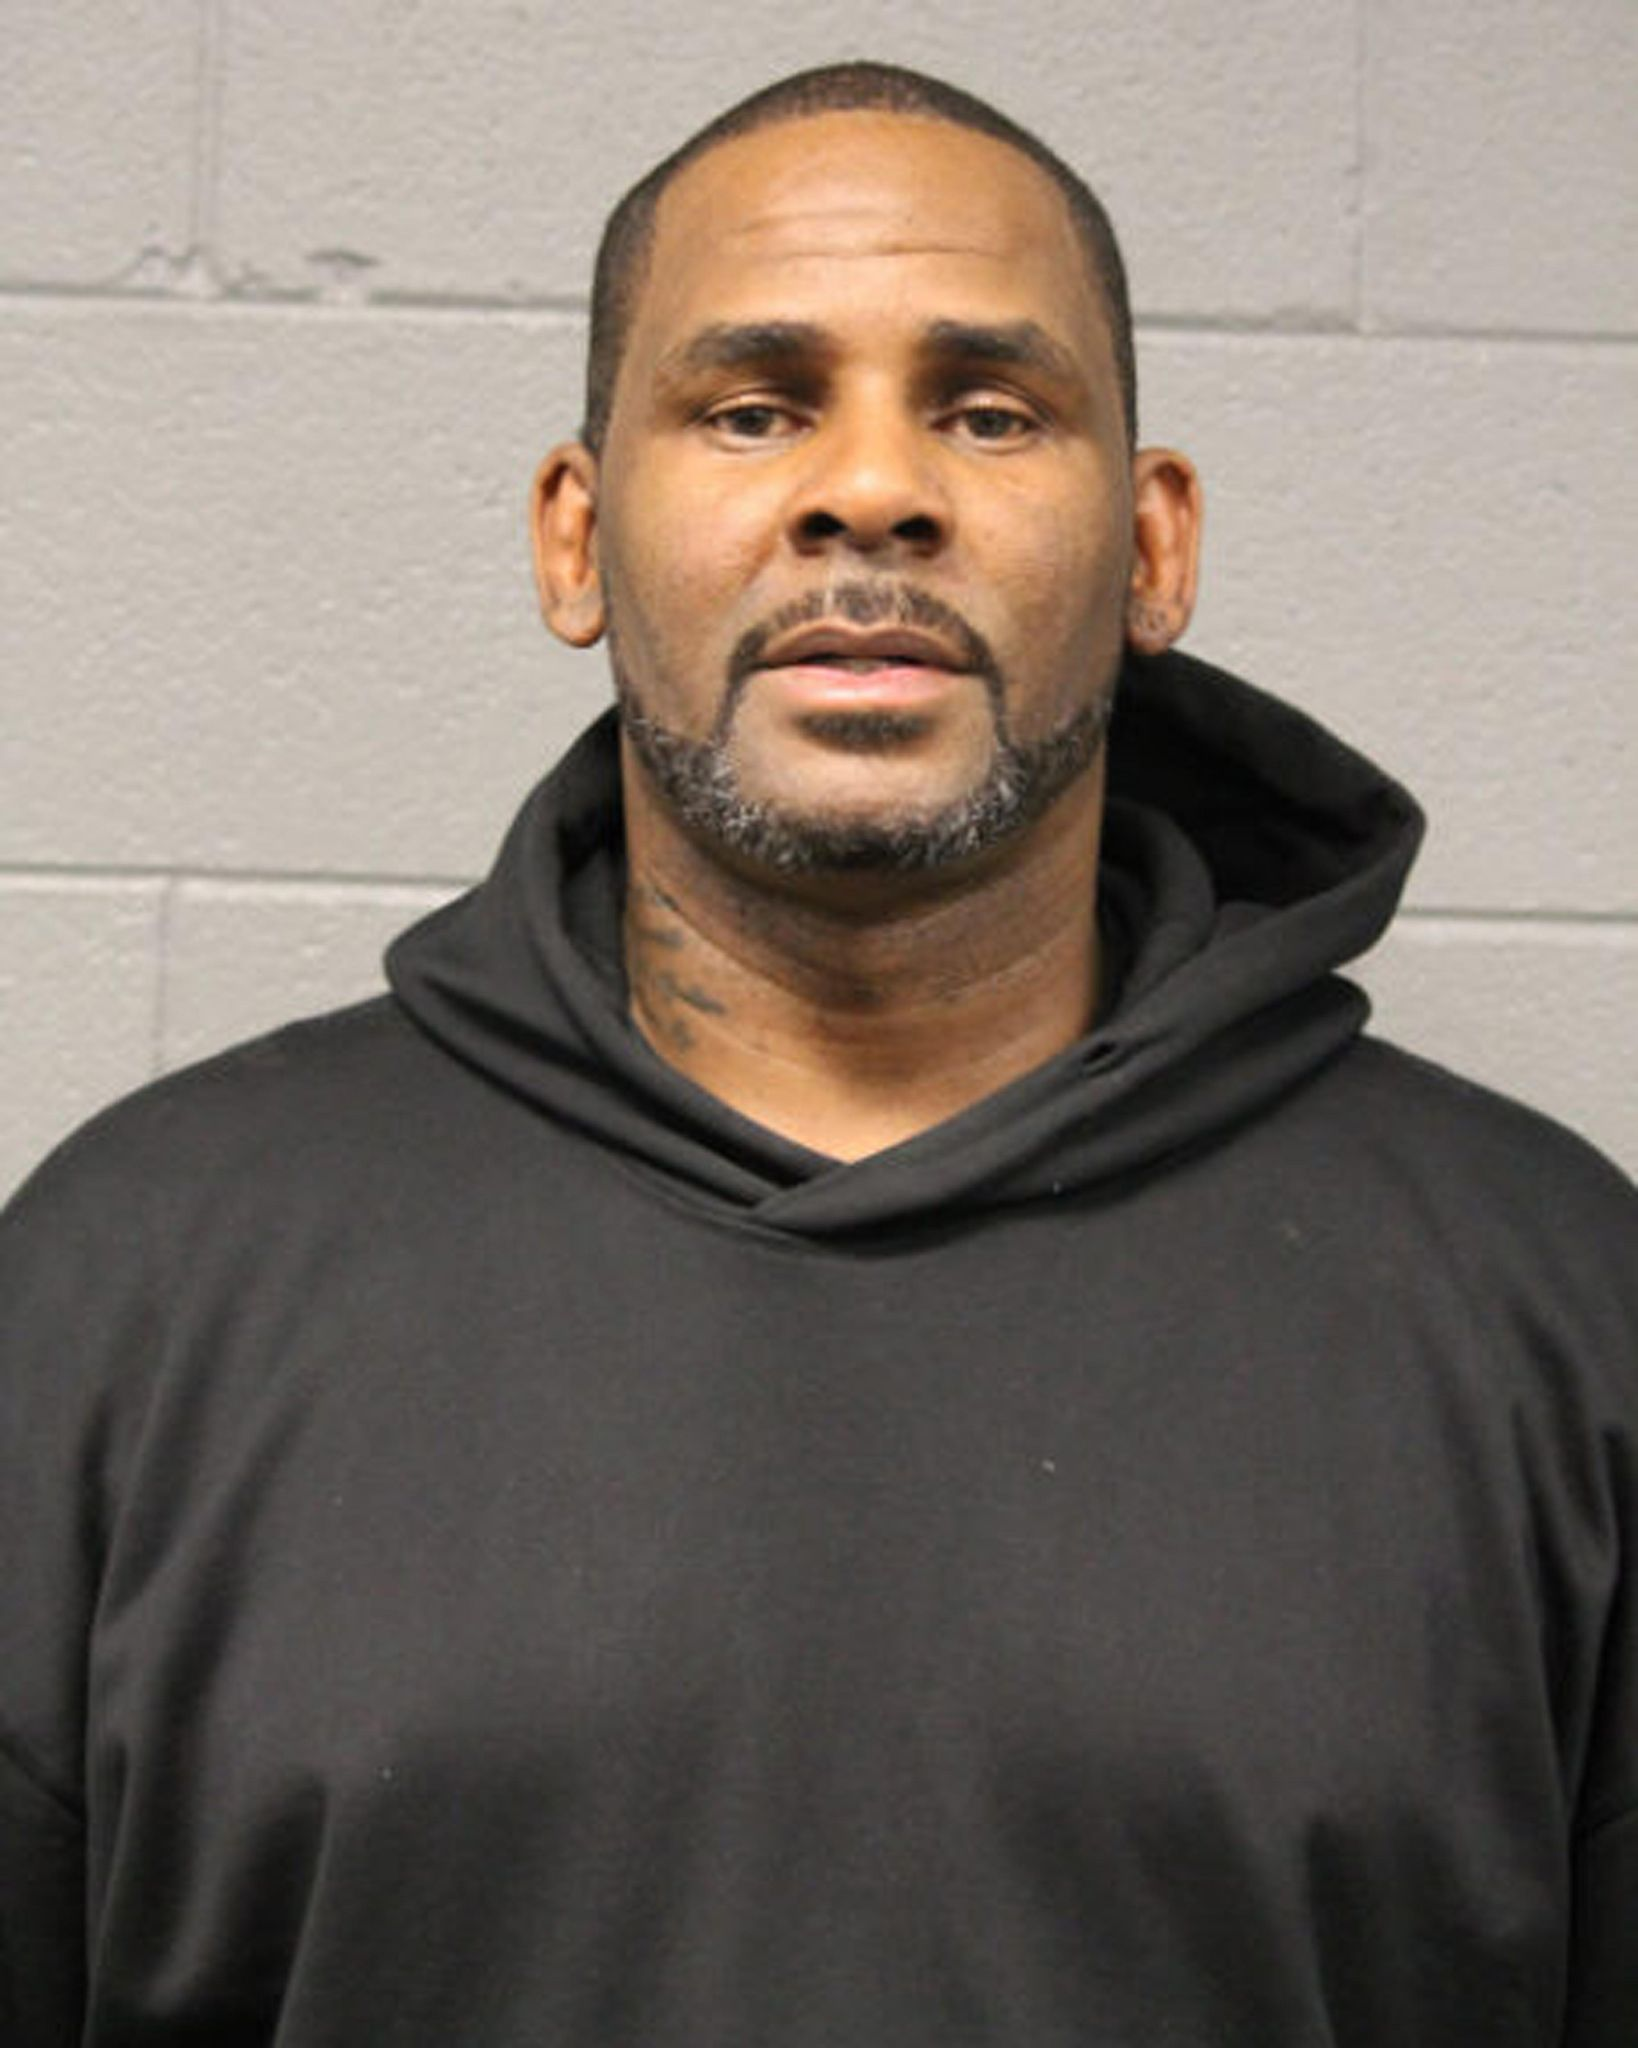 R. Kelly granted $1 million bond over sex abuse charges